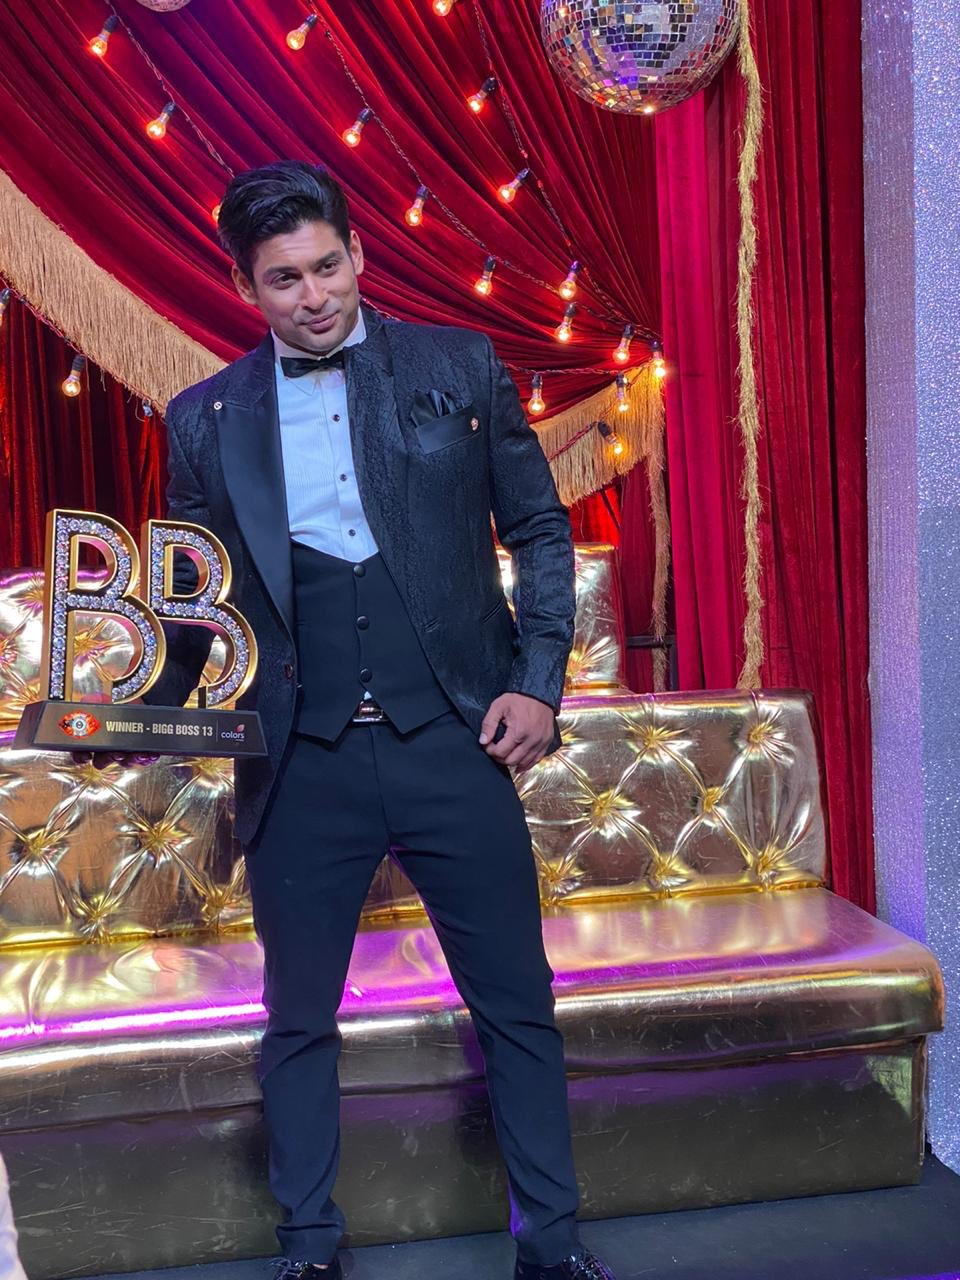 Bigg Boss 14: Winner Sidharth Shukla Charging HUGE Amount for 14-Day Stay- newsdezire